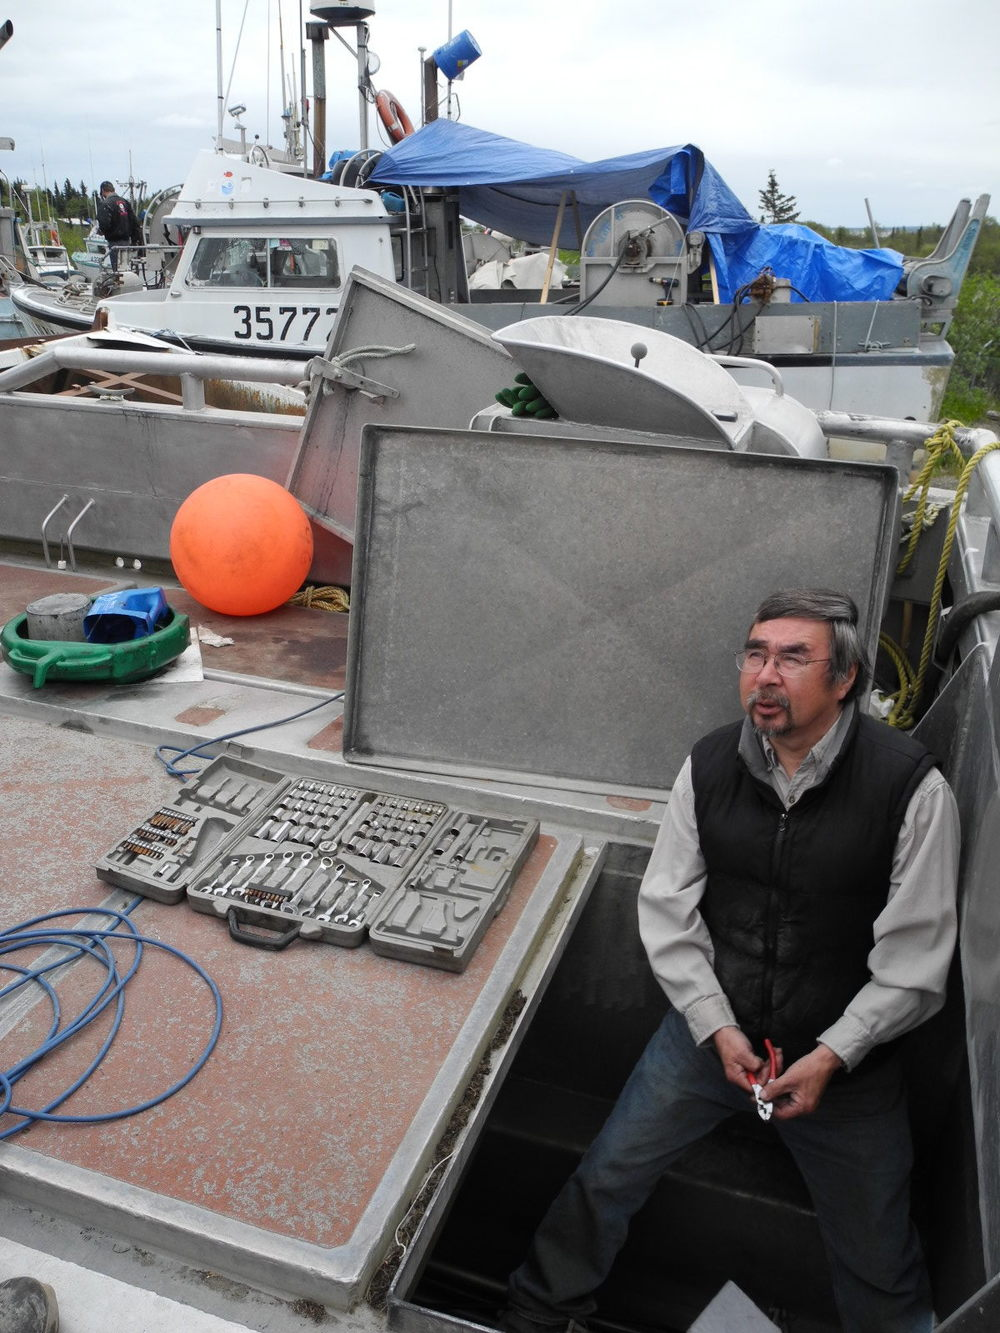 Chief Tom Tilden works on his fishing boat in Dillingham, Alaska